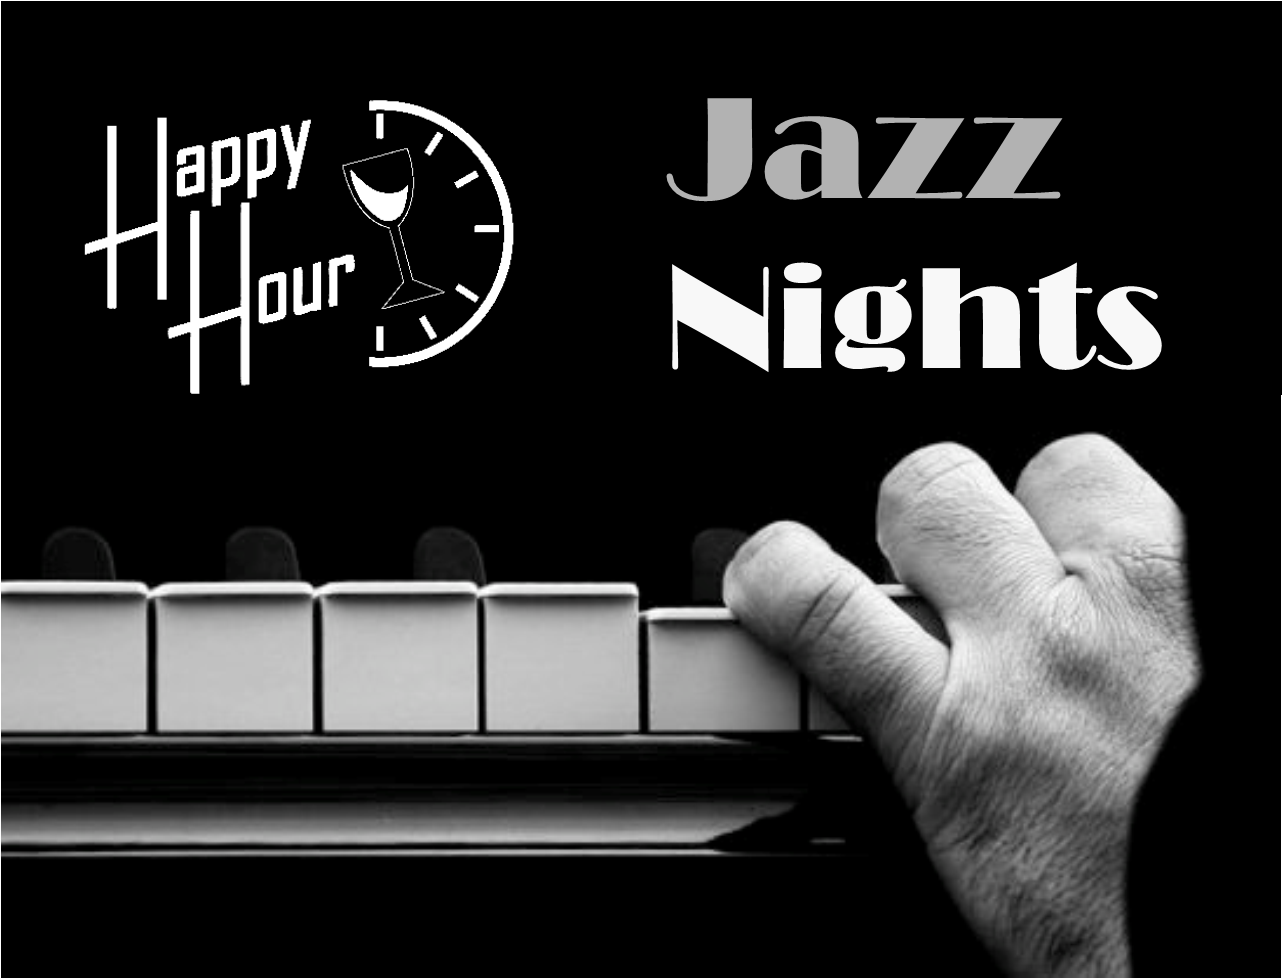 Jazz Nights and Happy Hour (Cocktail)